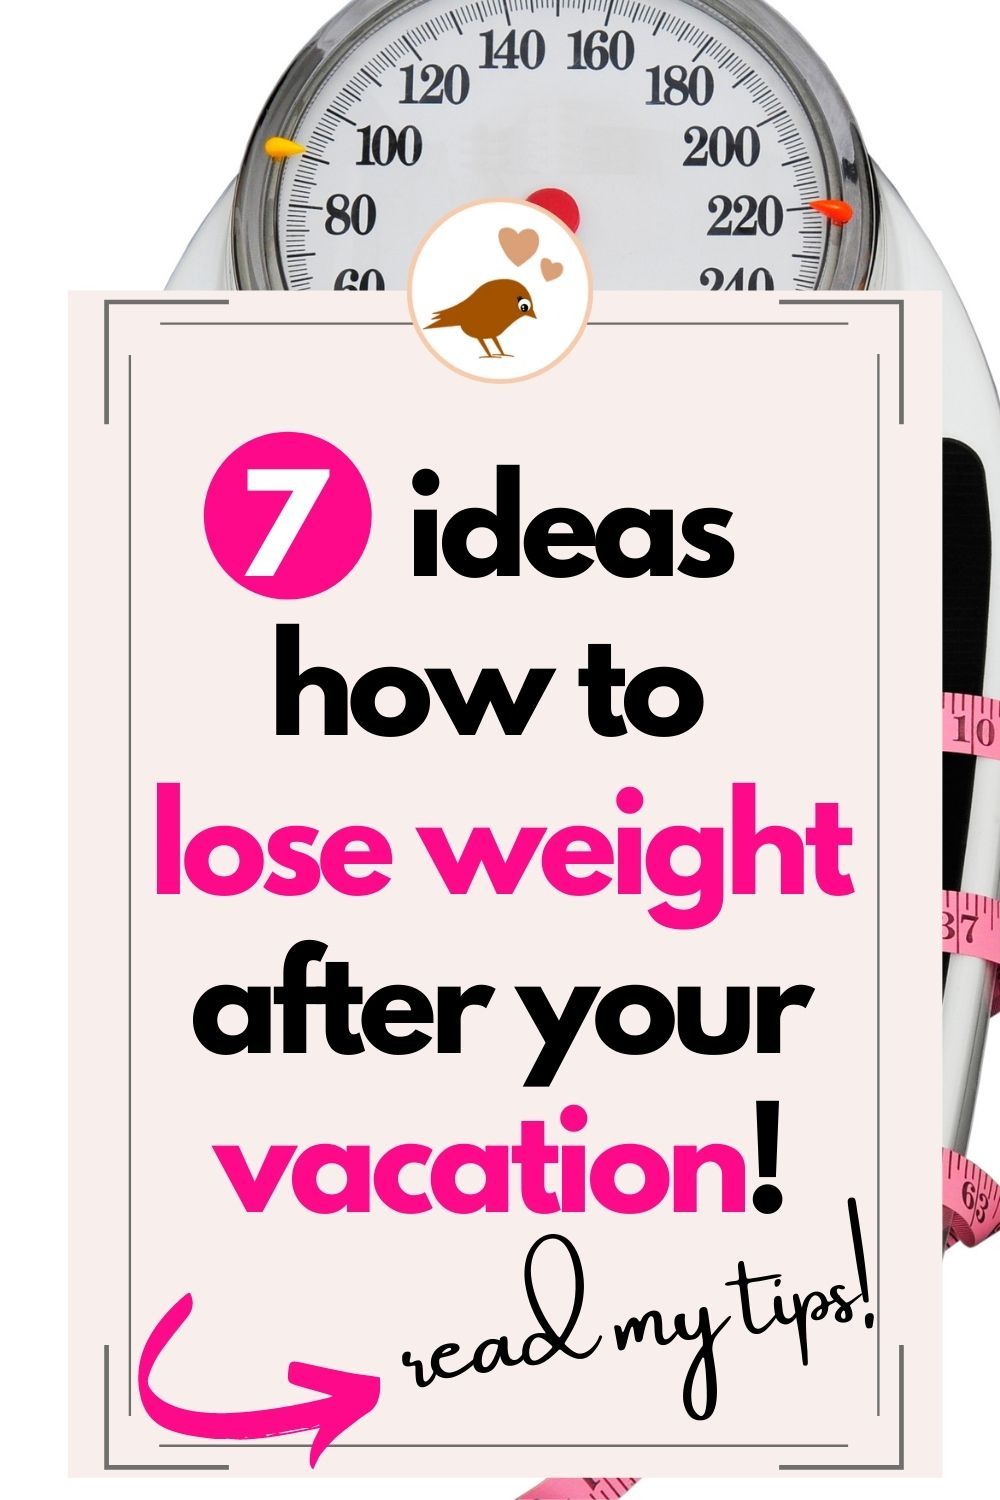 7 tips how to lose weight after your vacation